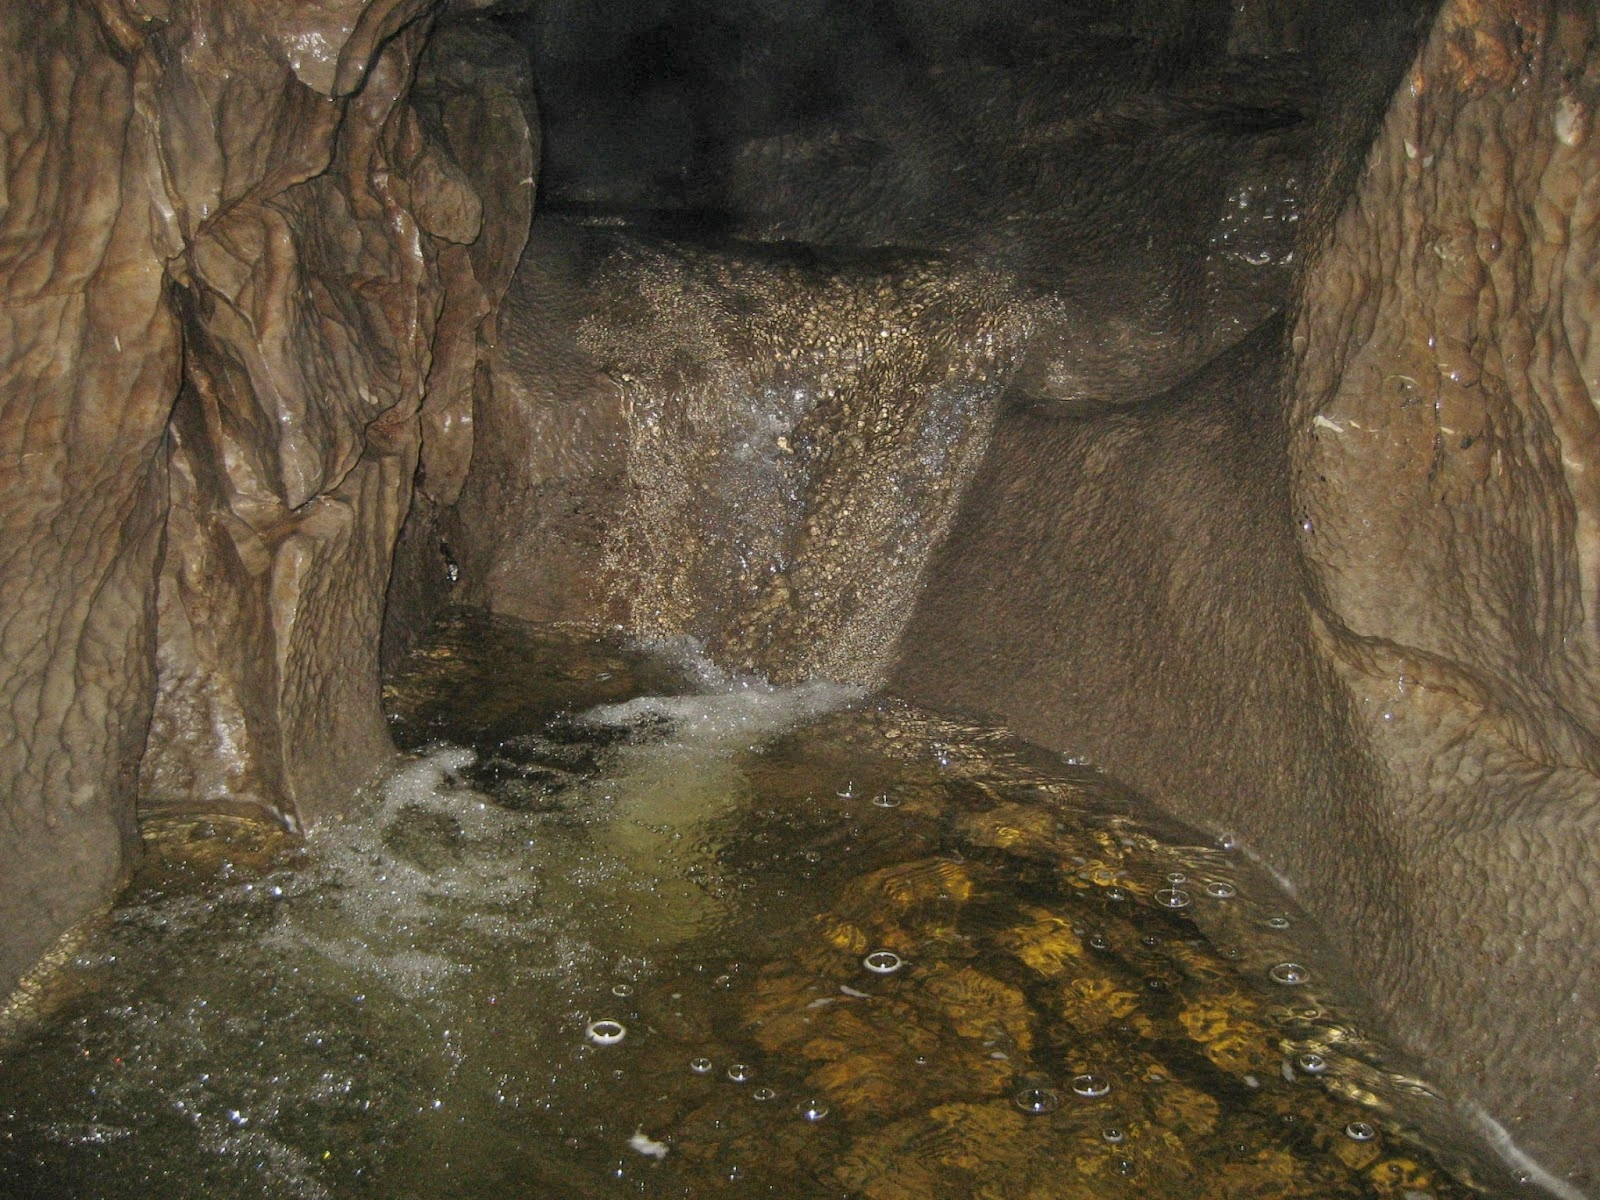 Cascades inside Upper Long Churn Cave, where water has exploited weaker beds to drop to a new level. Stephen Oldfield